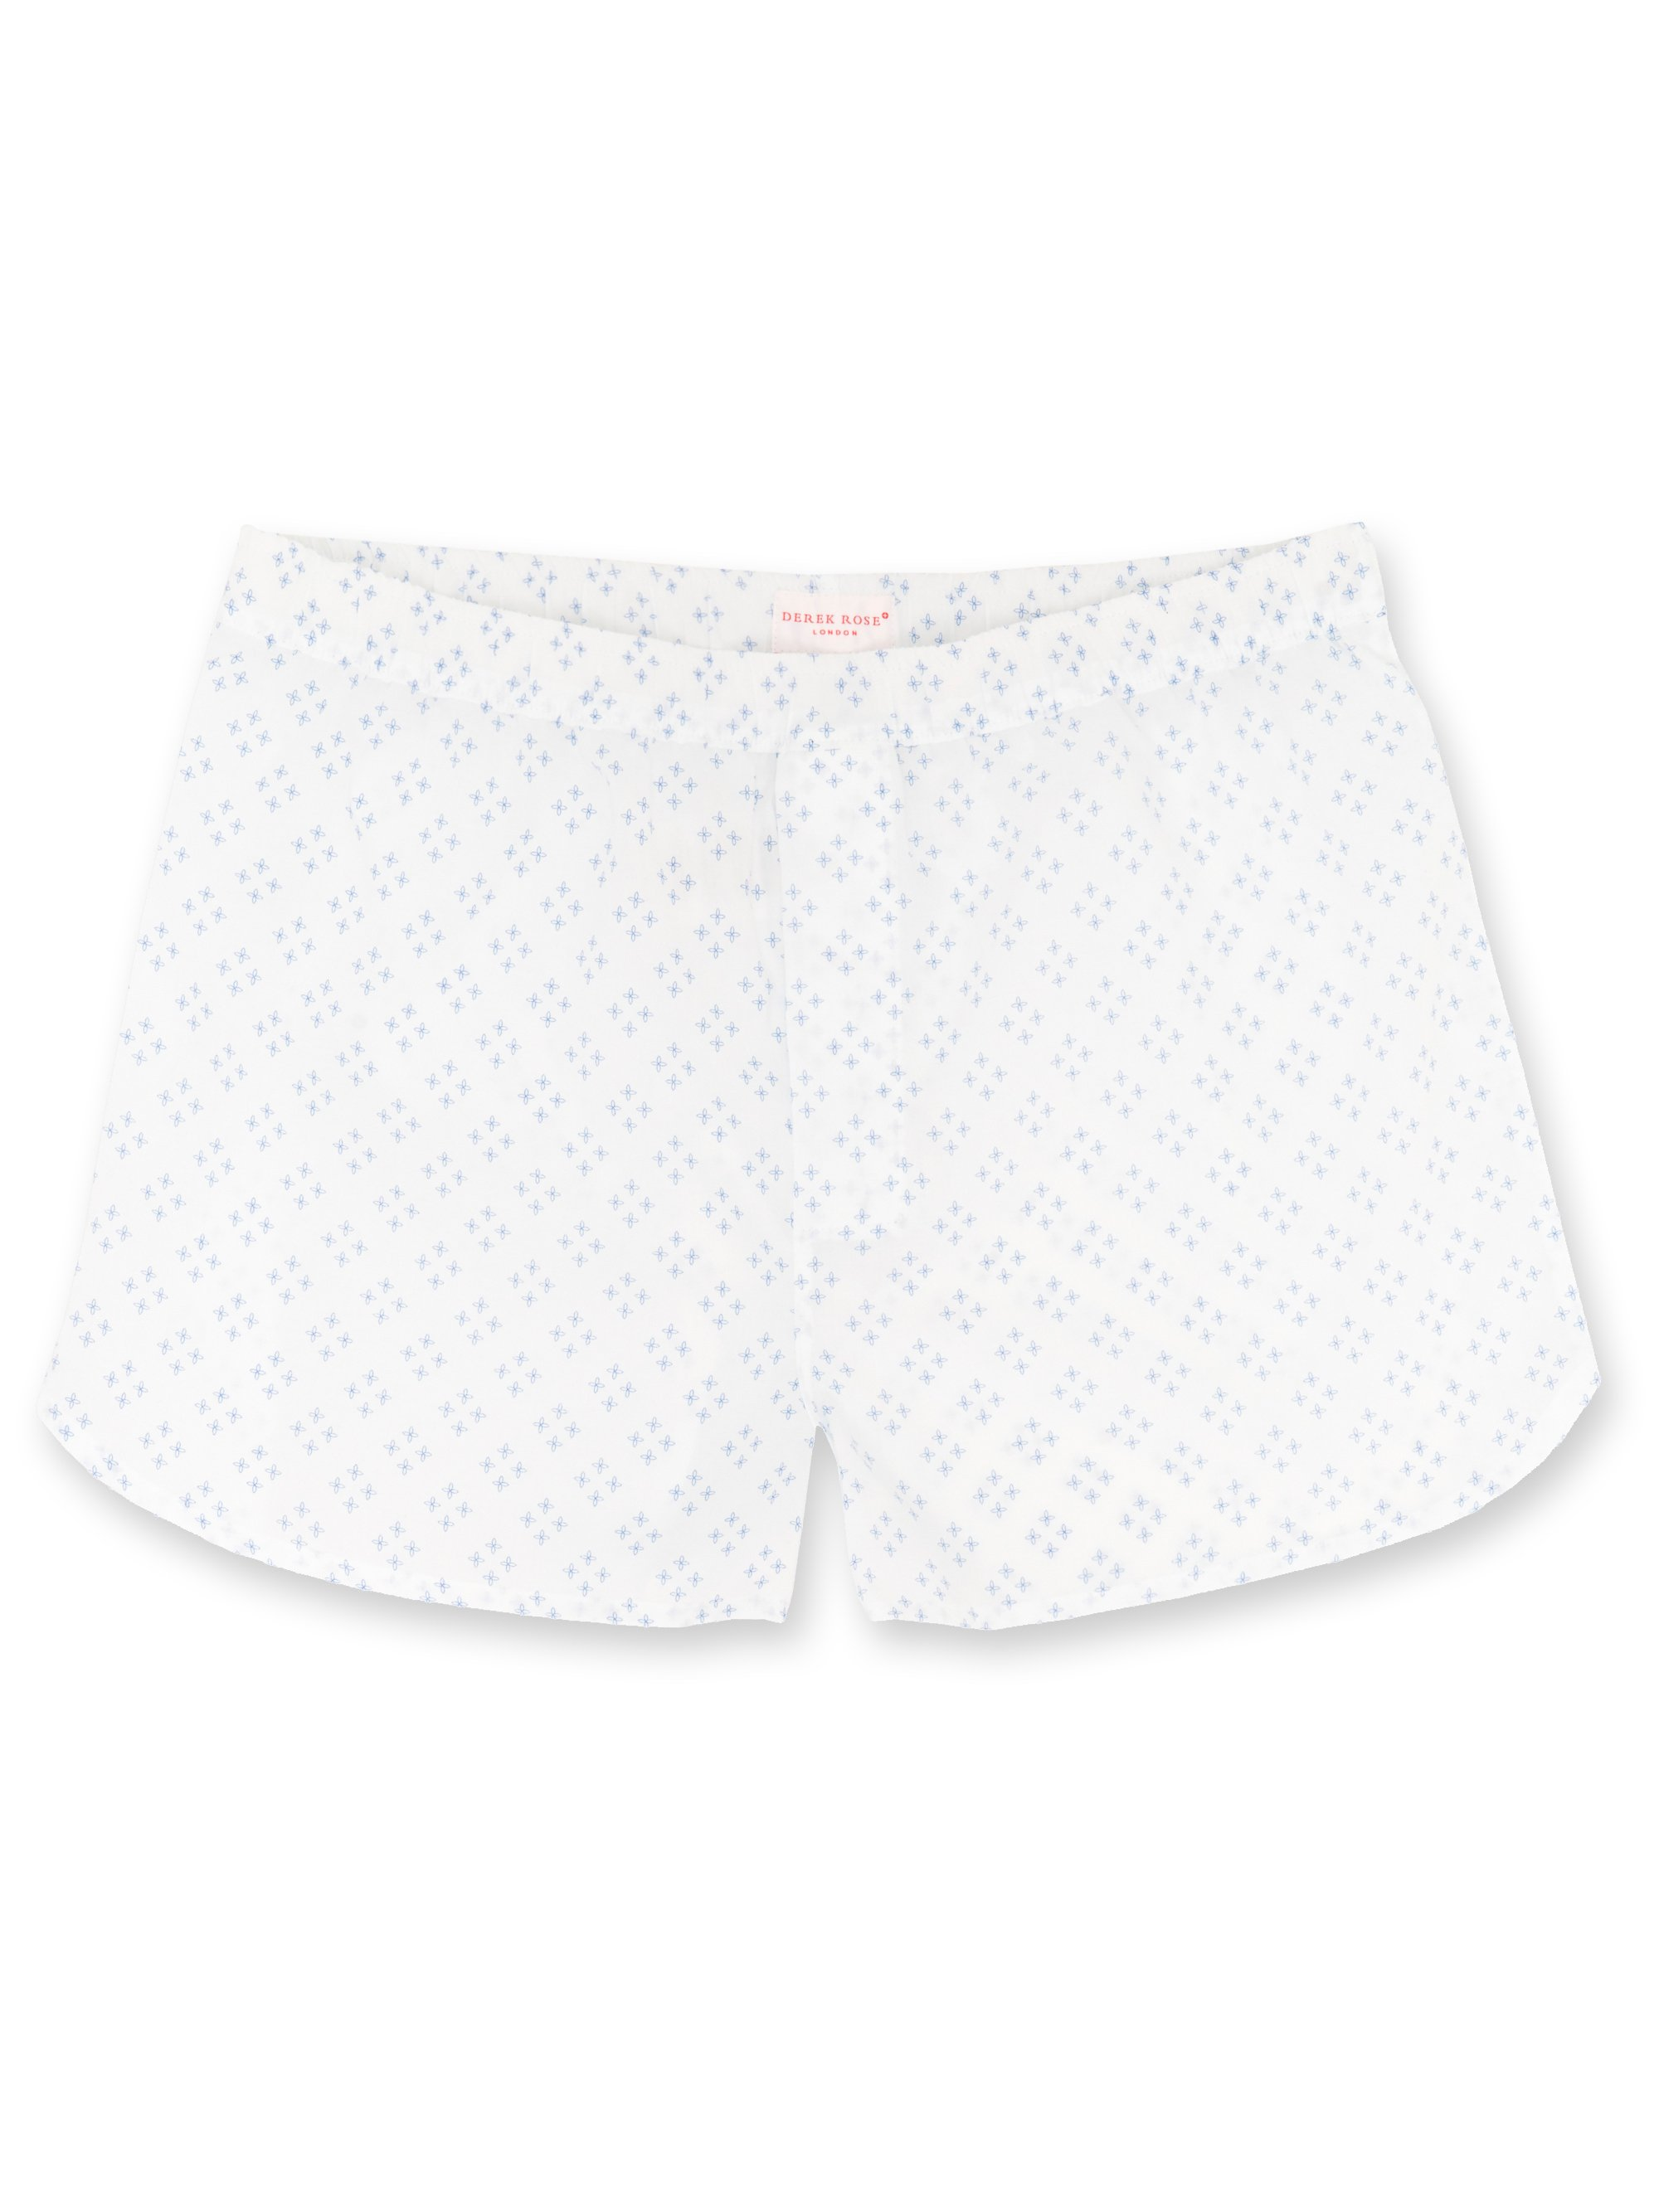 Men's Modern Fit Boxer Shorts Nelson 46 Printed Pure Cotton White